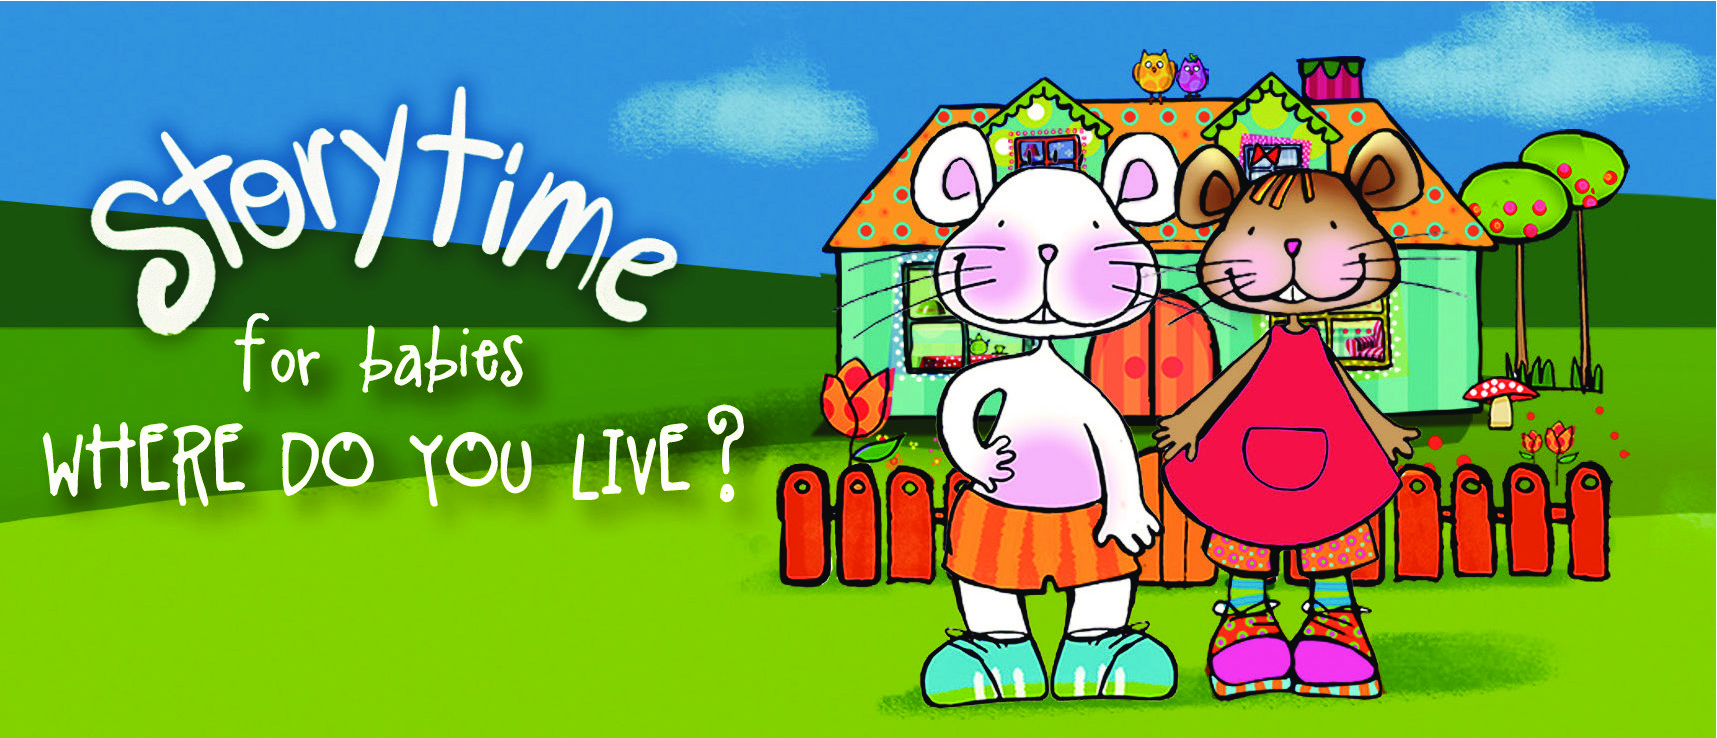 Storytime pour bébés 'Where do you live?